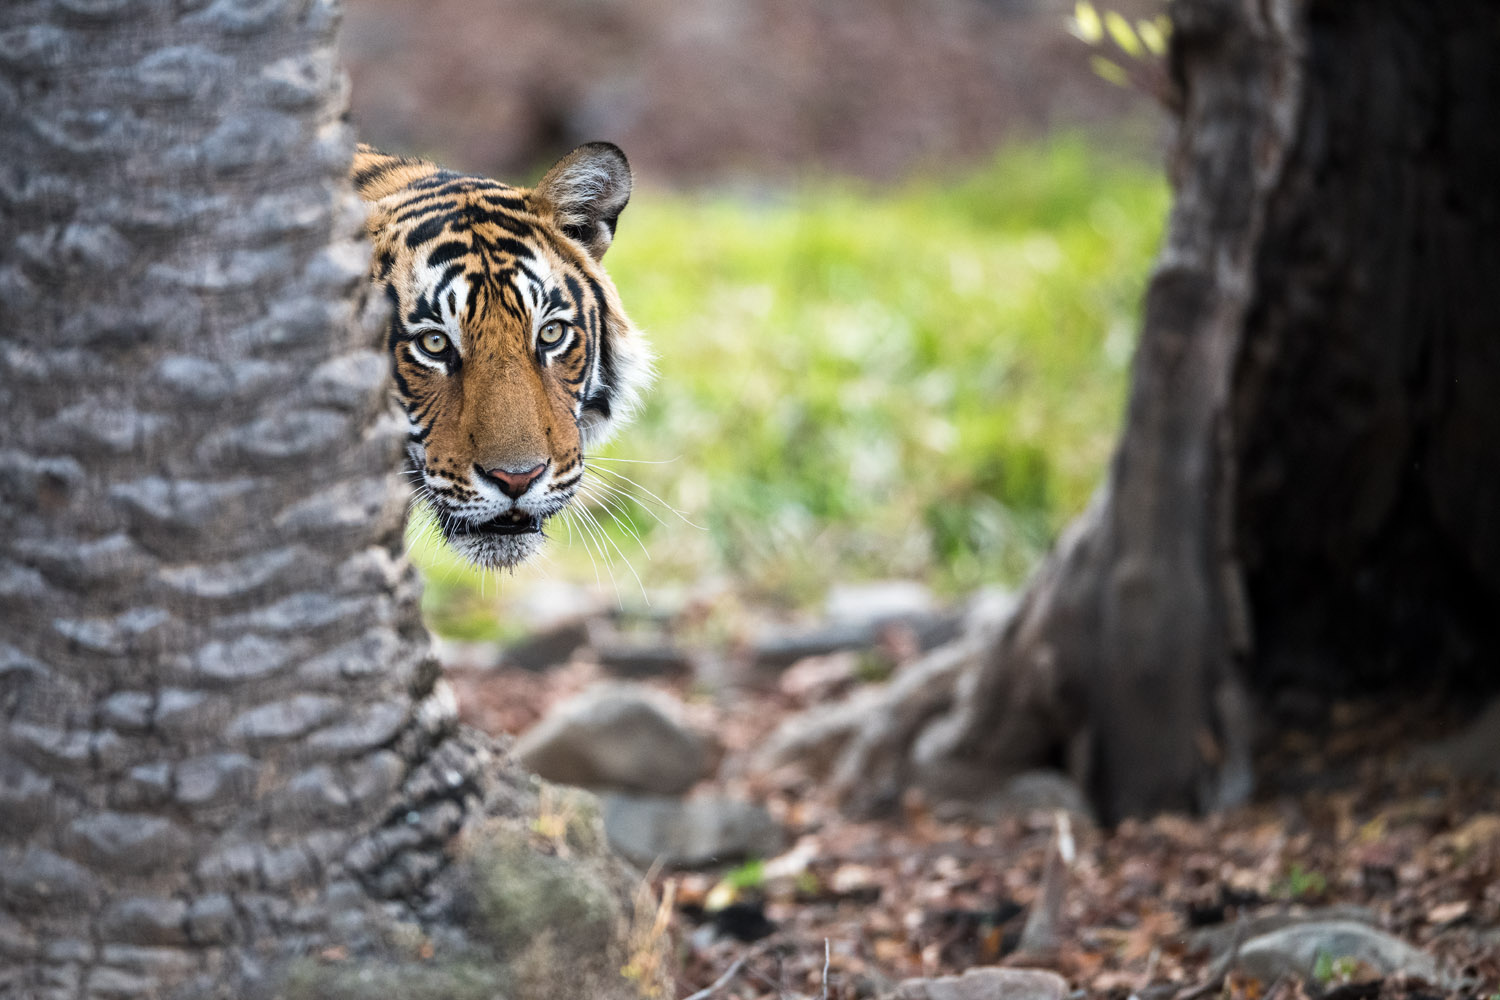 Bengal tiger looking around palm tree, Ranthambhore National Park, Rajasthan, India